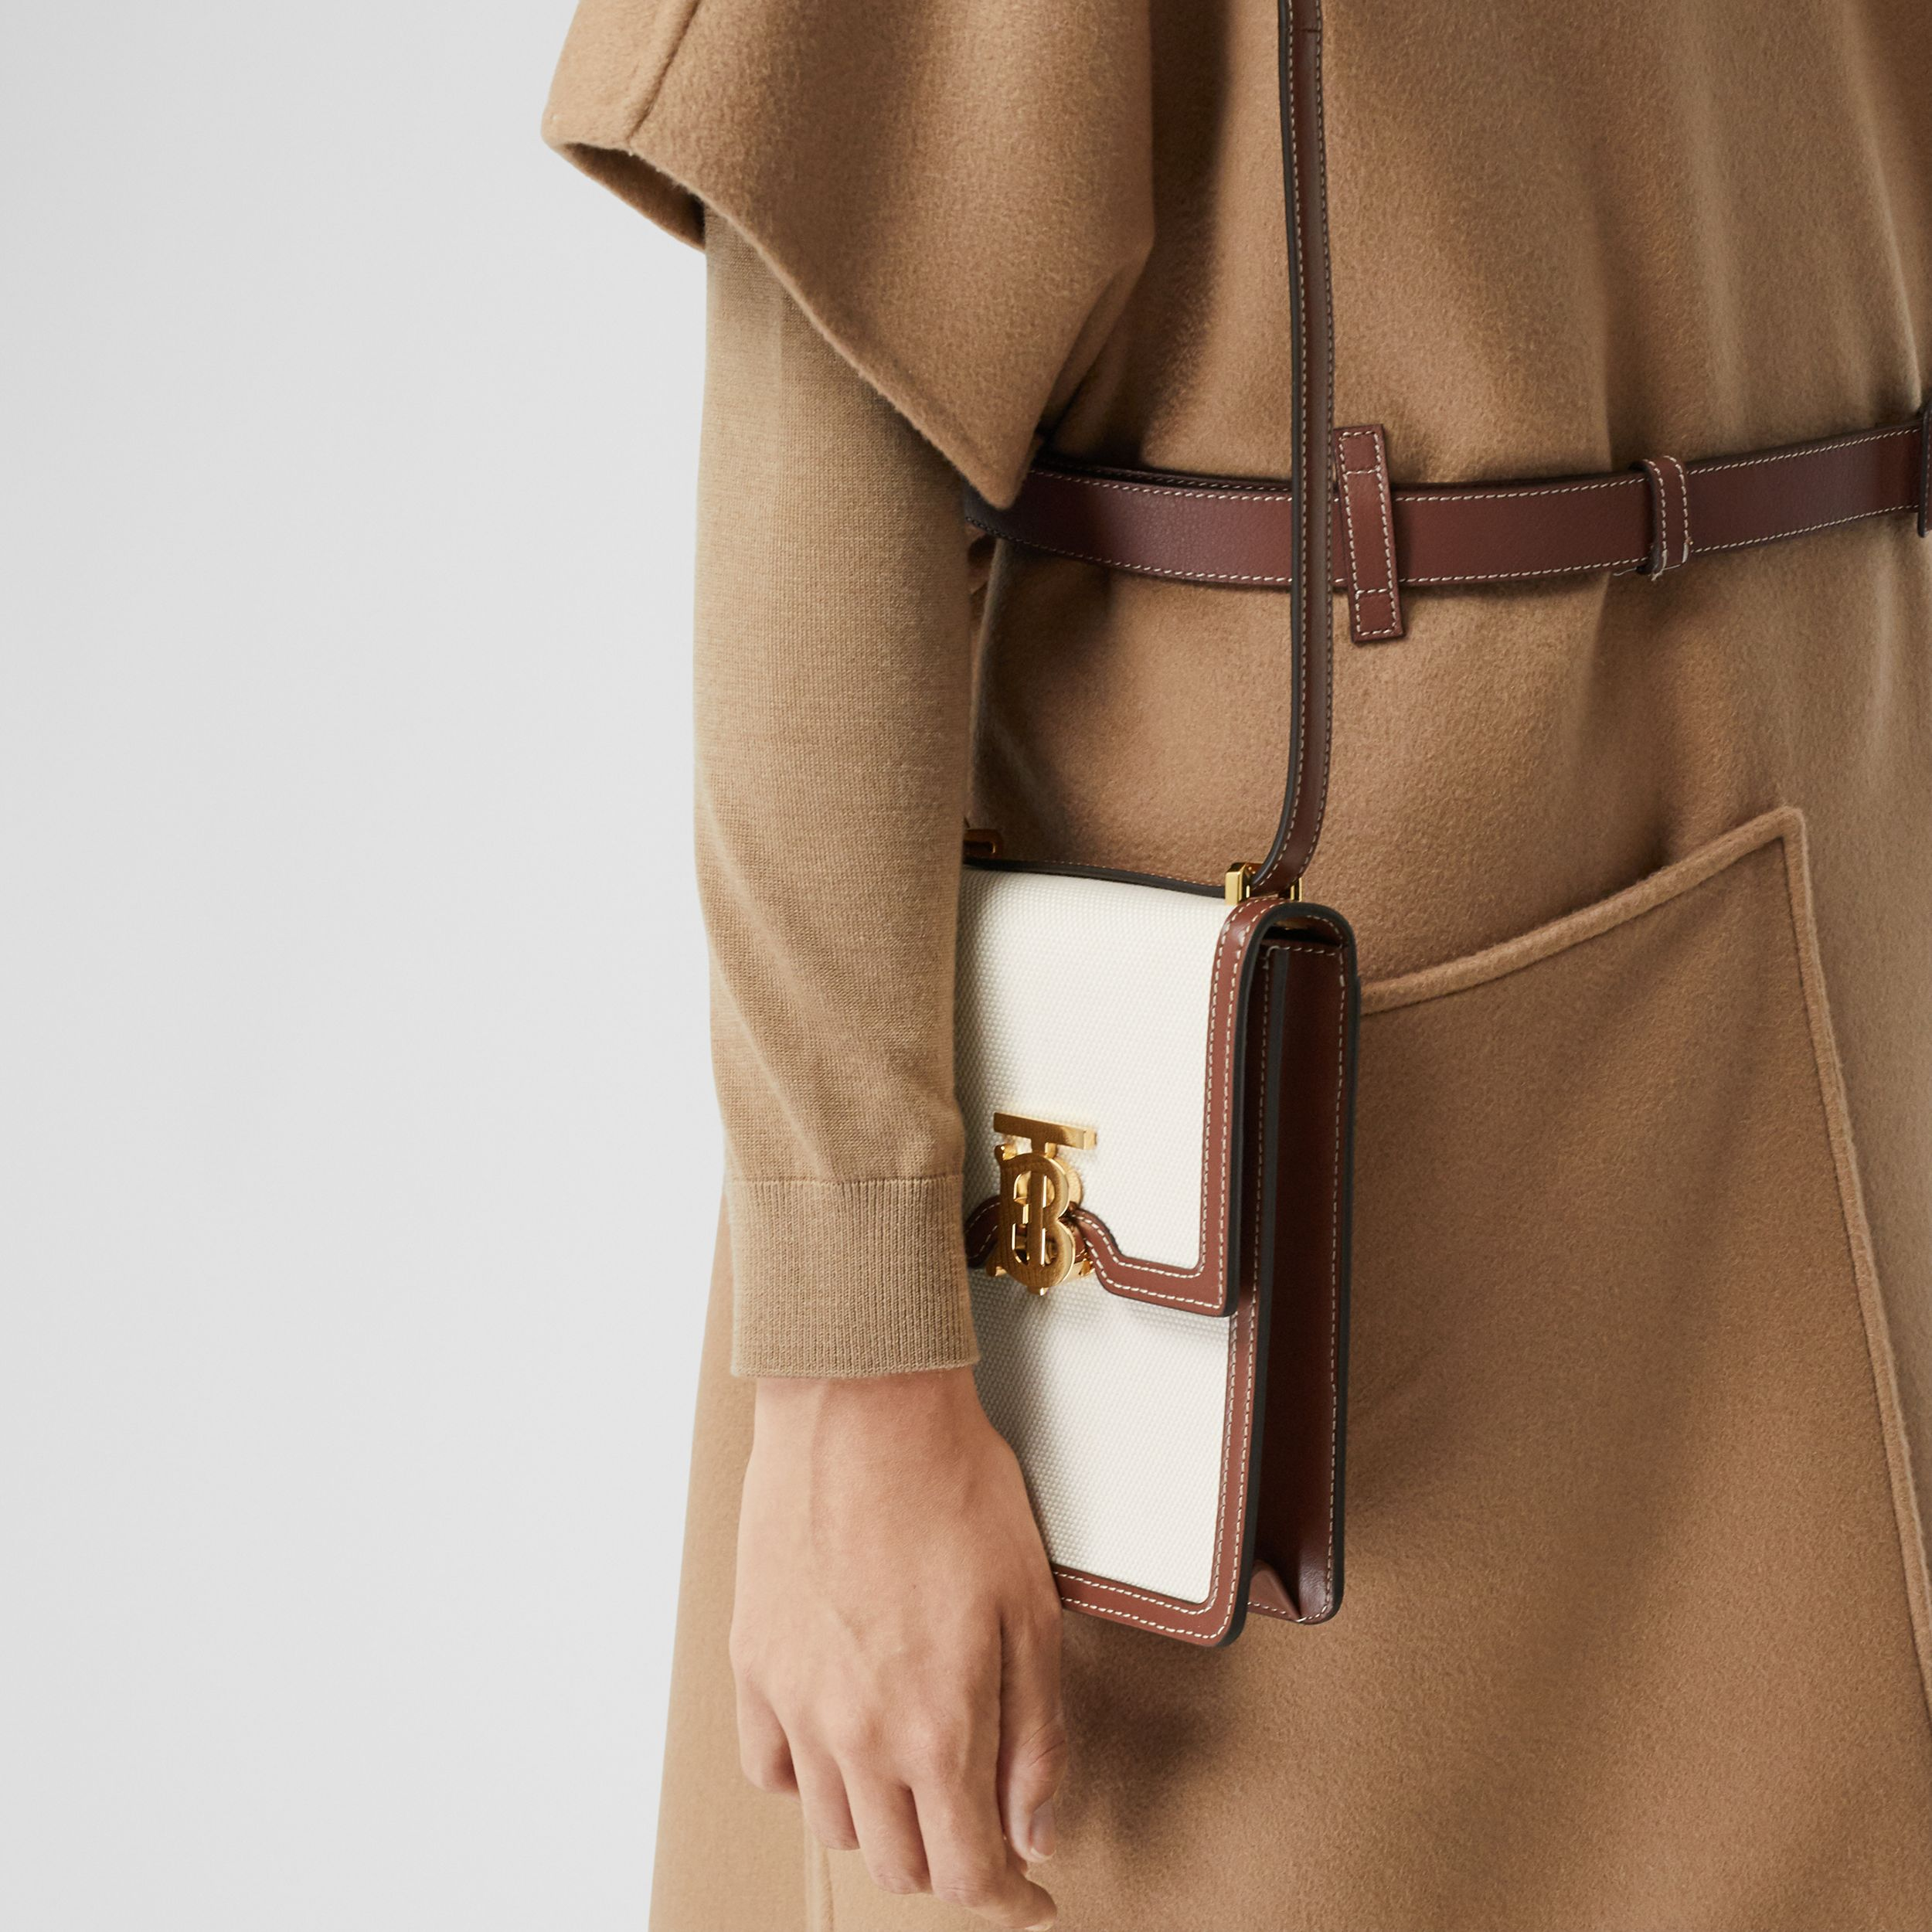 Cotton Canvas and Leather Robin Bag in White/tan - Women | Burberry Australia - 3